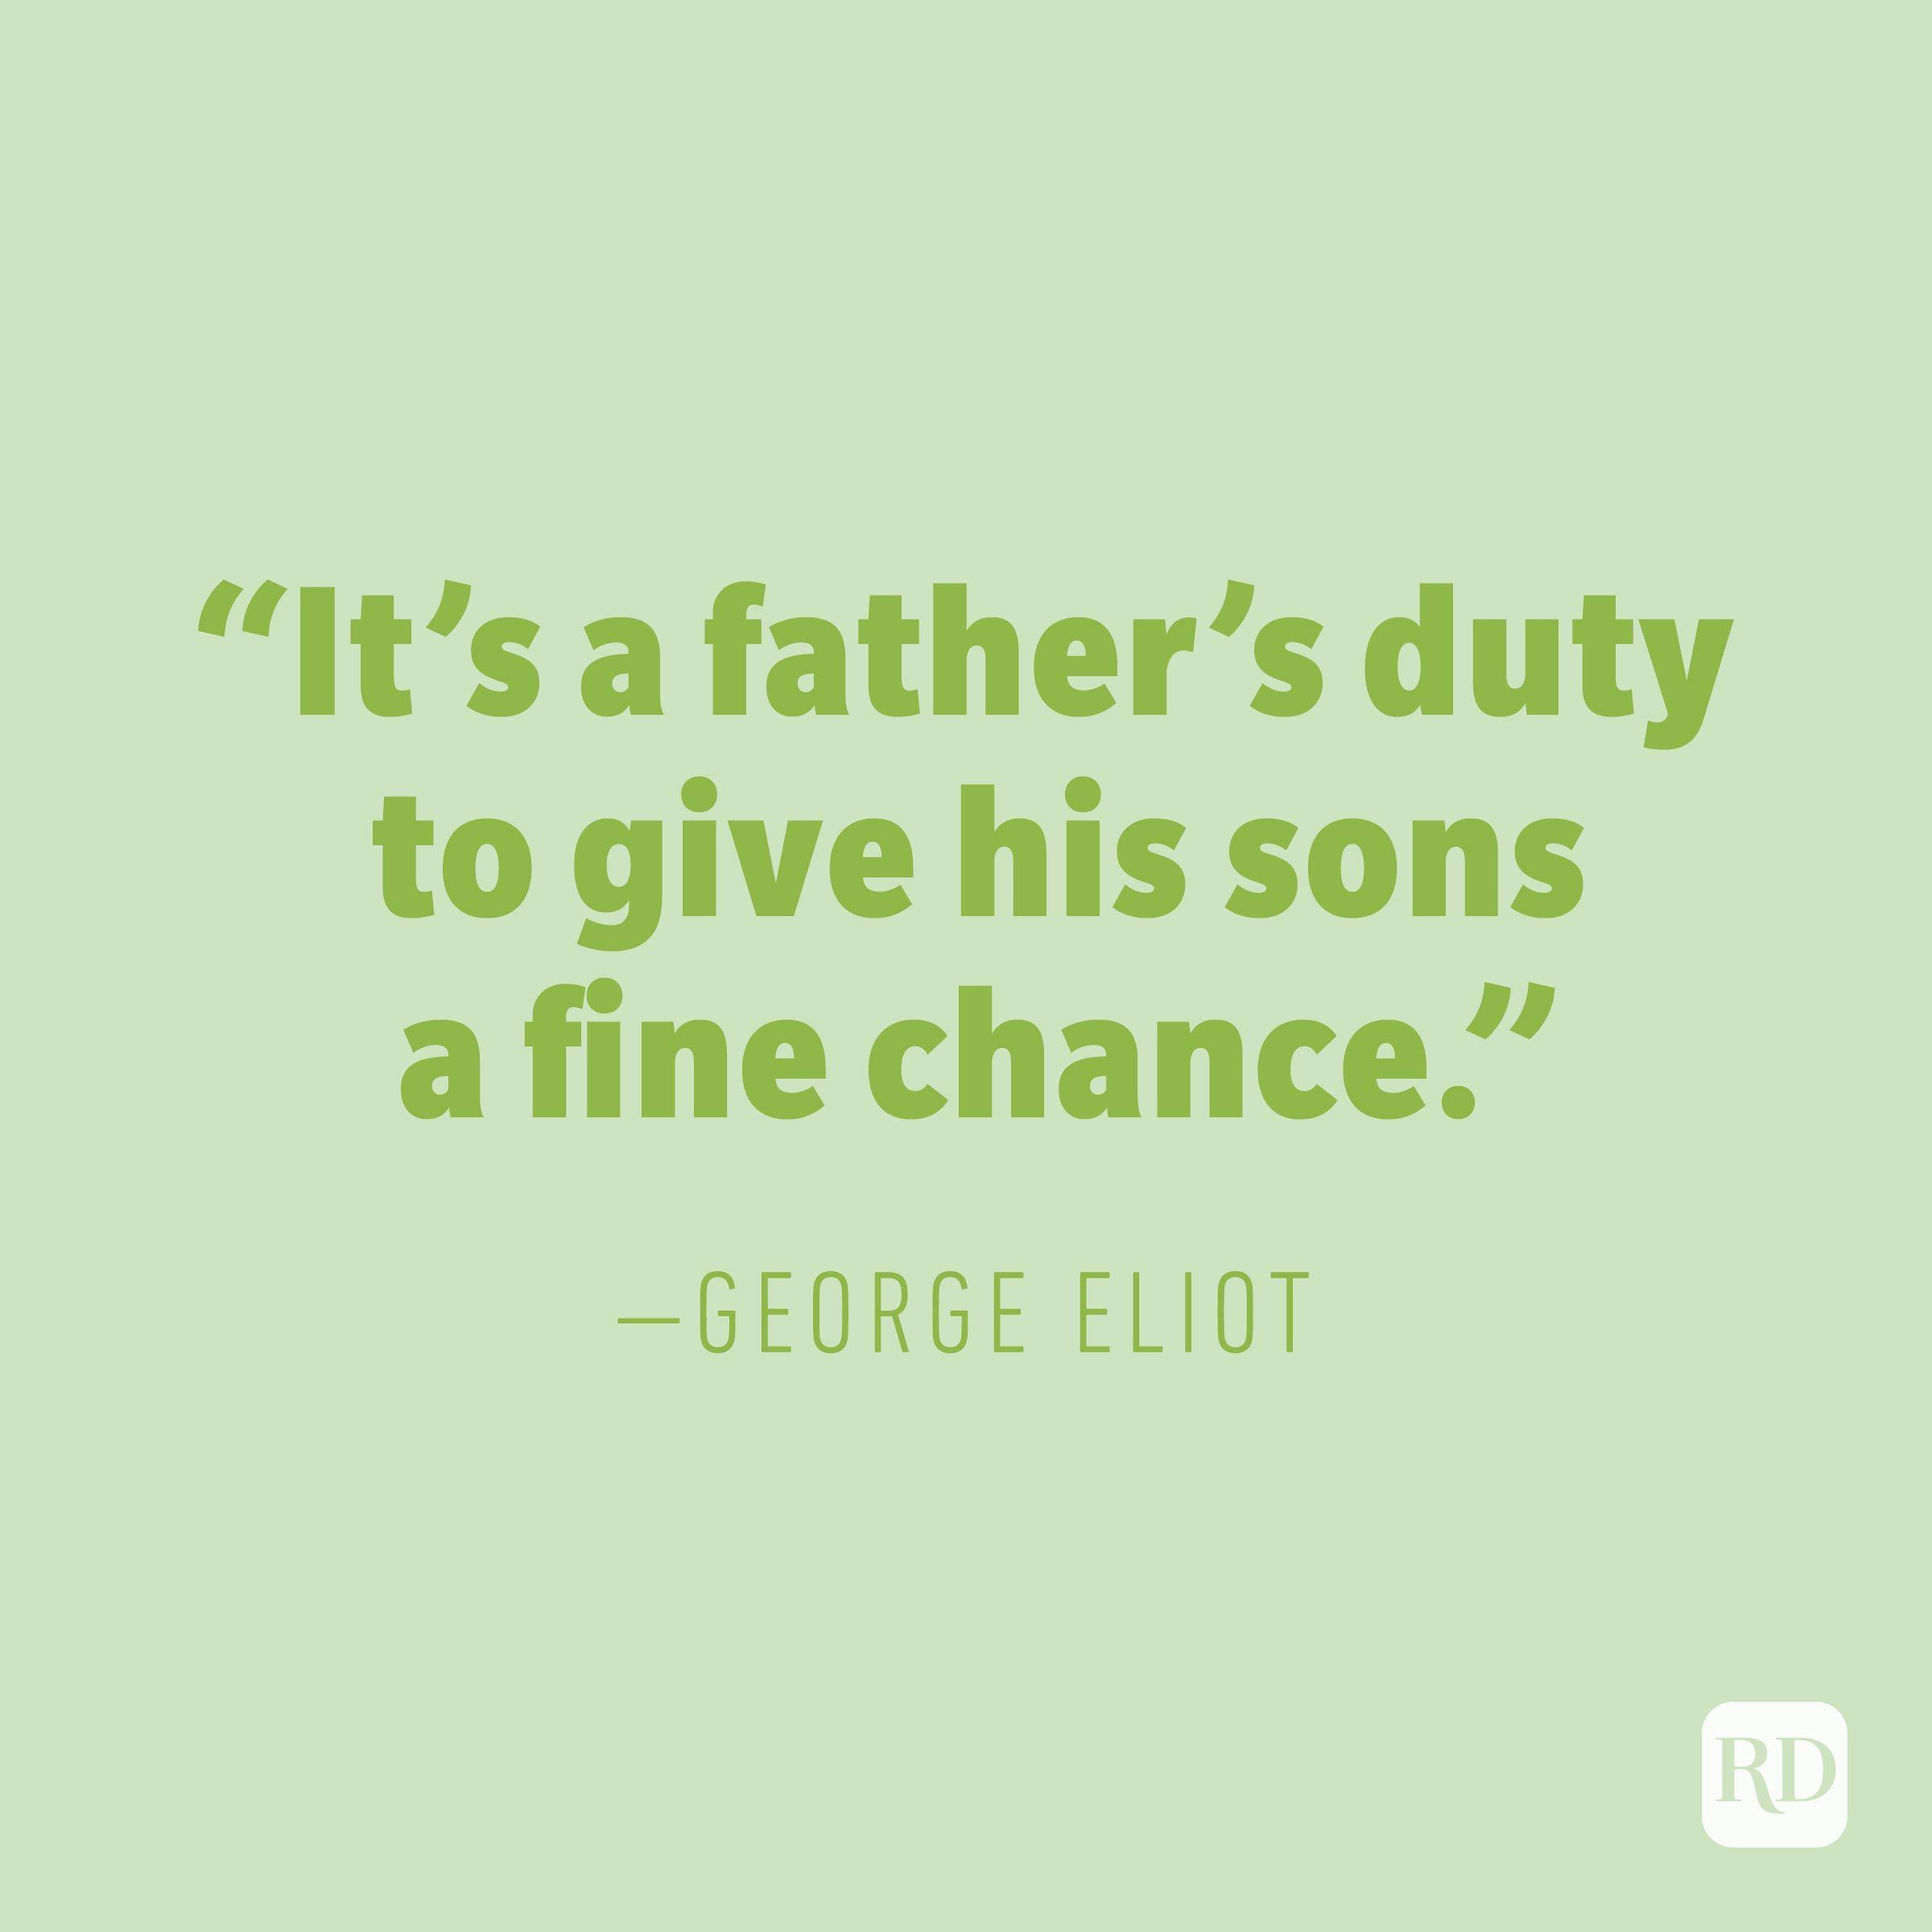 """It's a father's duty to give his sons a fine chance."" —GEORGE ELIOT"